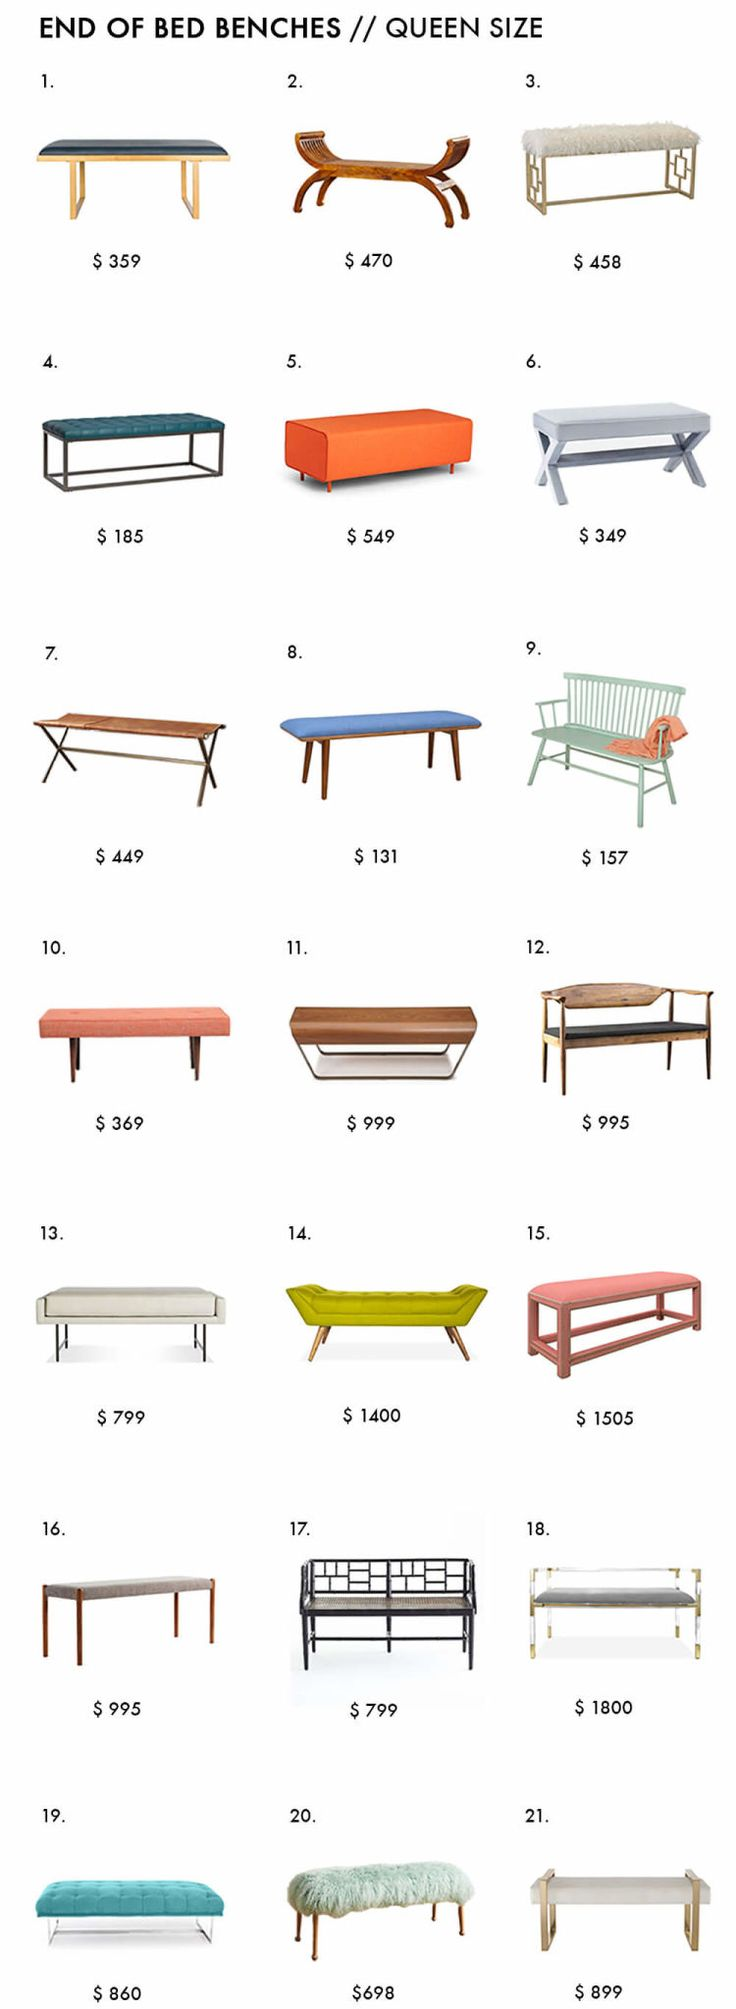 Best End Of Bed Bench Ideas On Pinterest Bed Bench Bed End